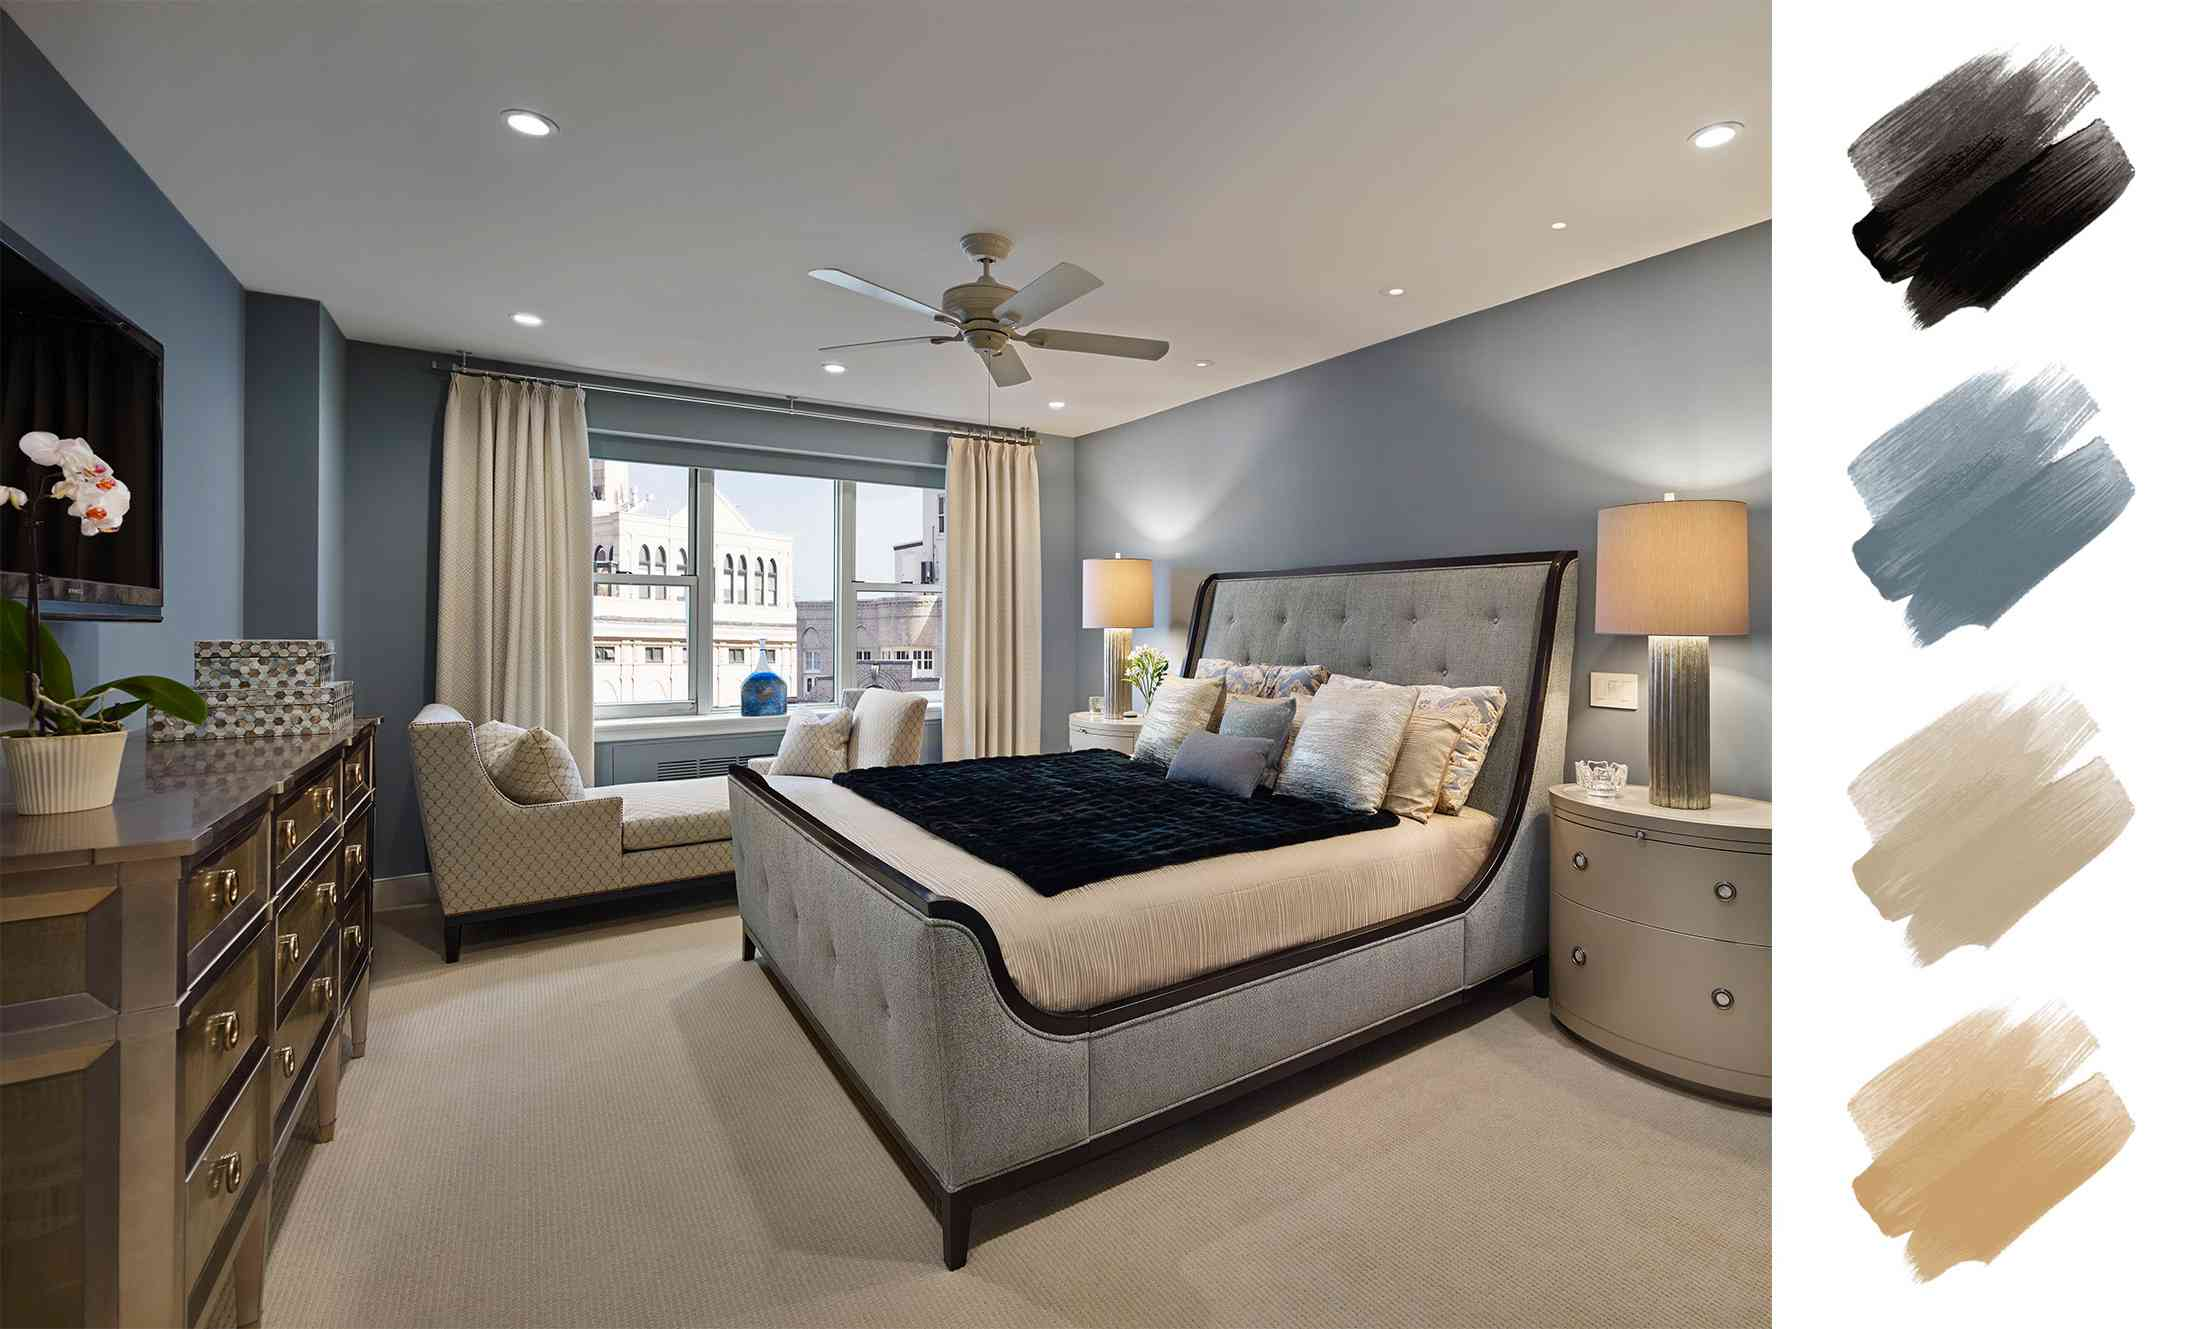 neutral color scheme - blue gray bedroom with tan and beige accents